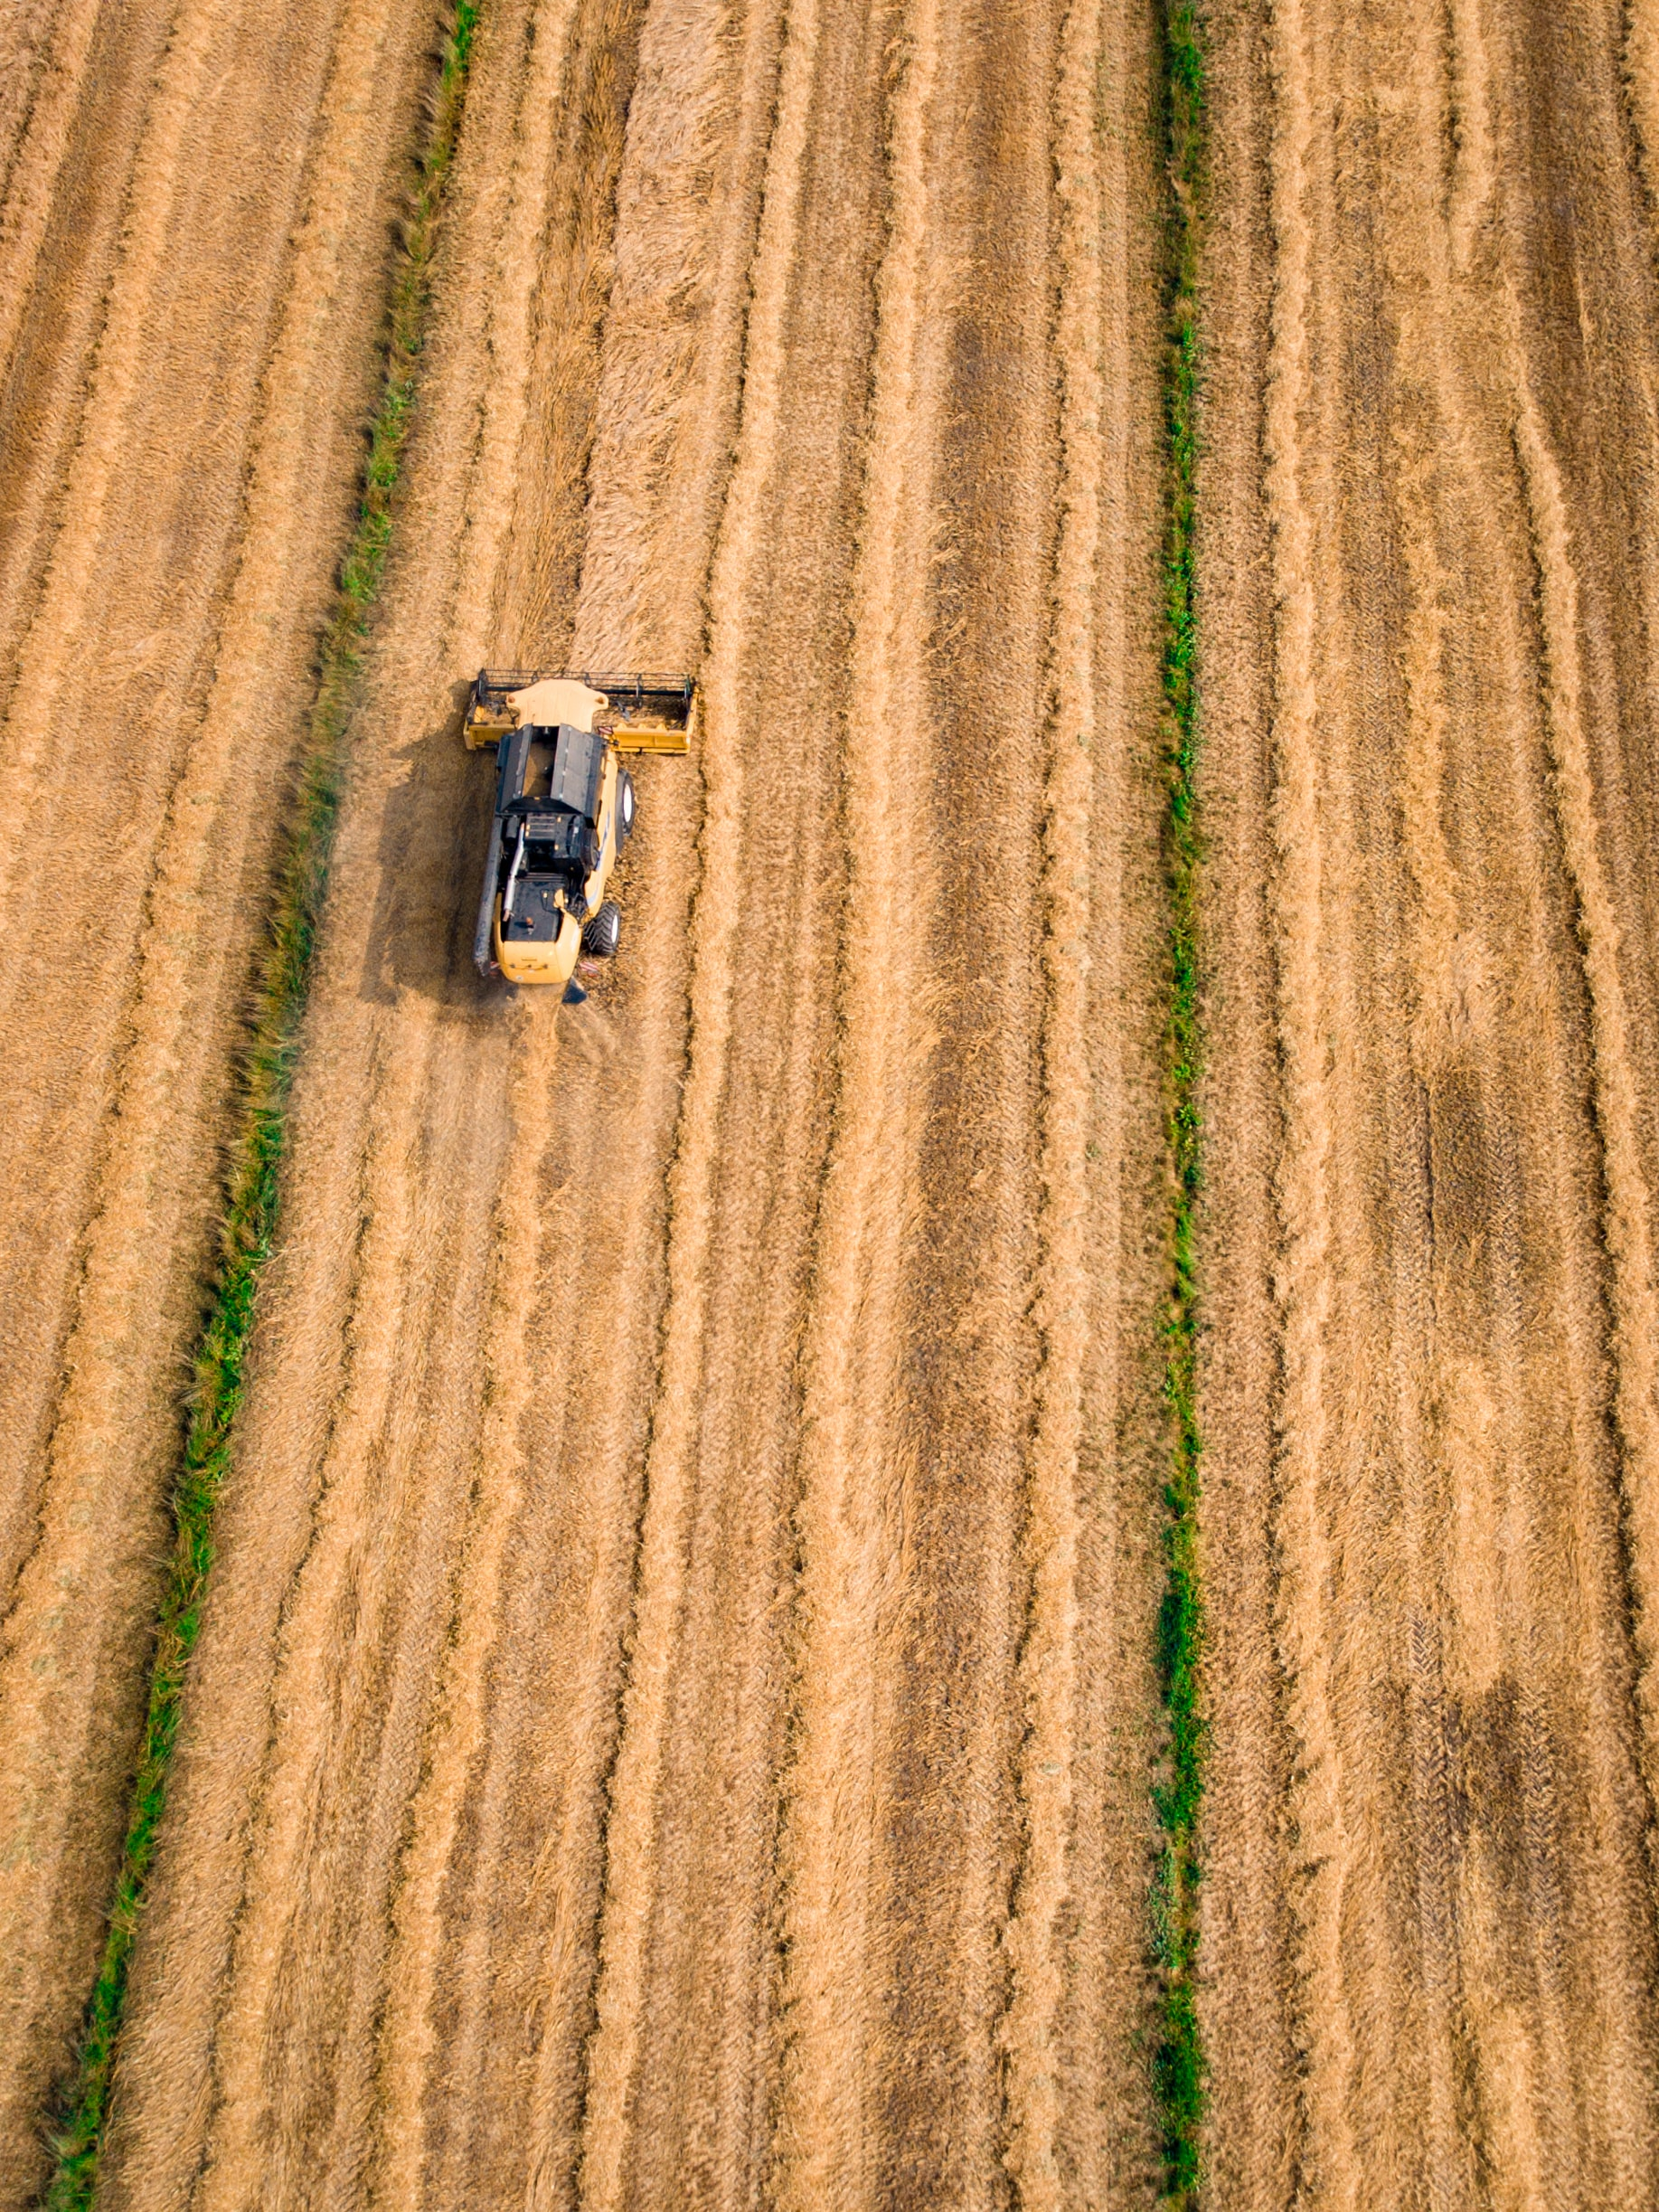 Drone photo of a tractor harvesting crops